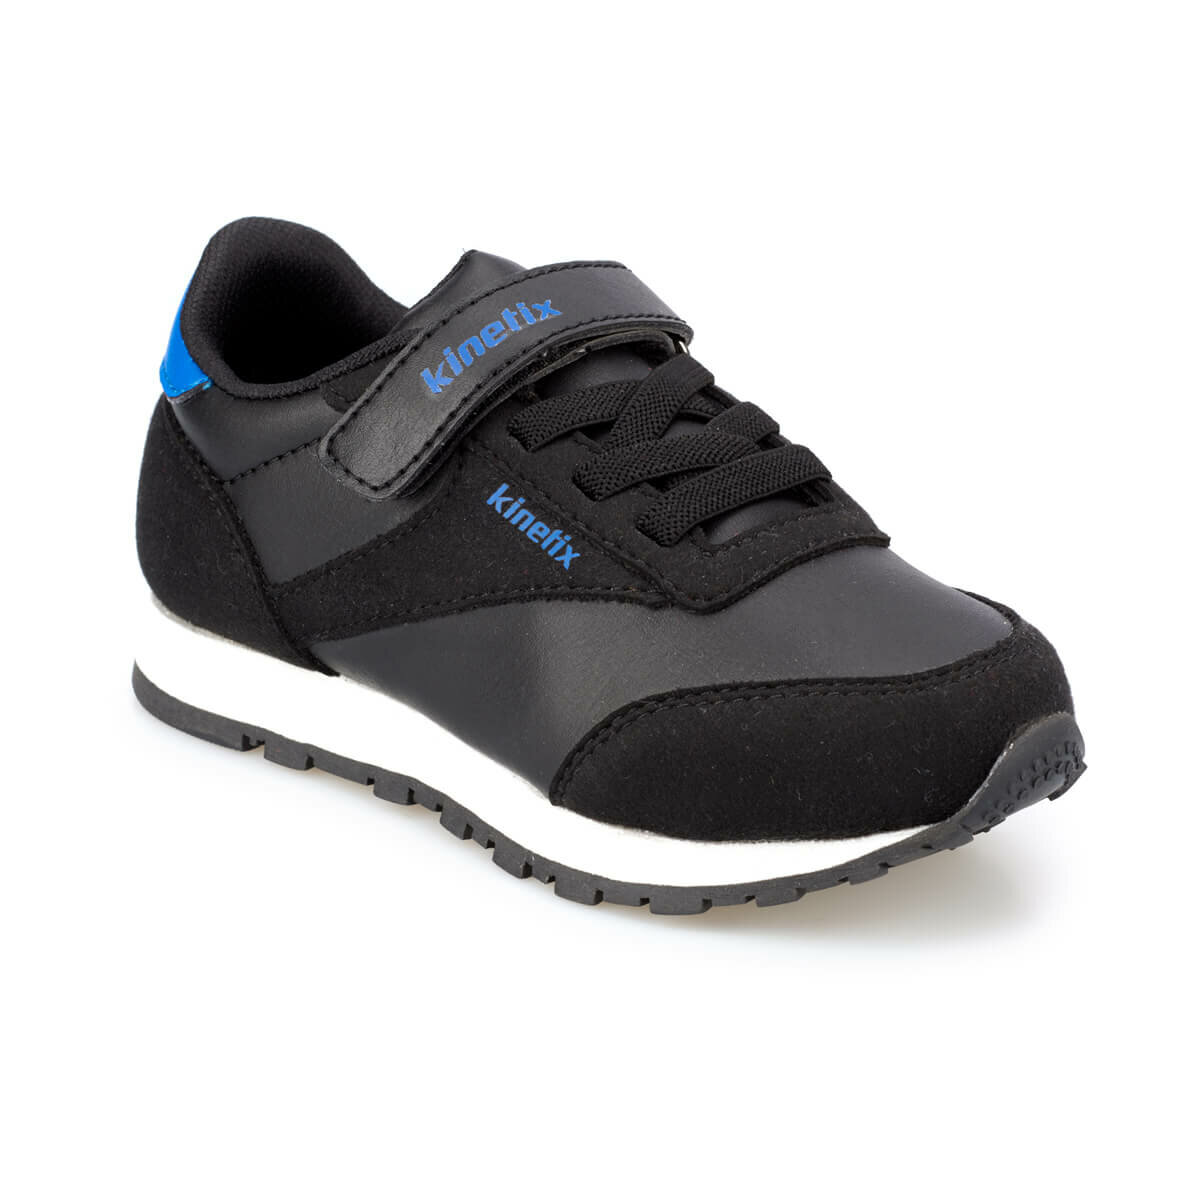 FLO LOWER J Black Male Child Sneaker Shoes KINETIX